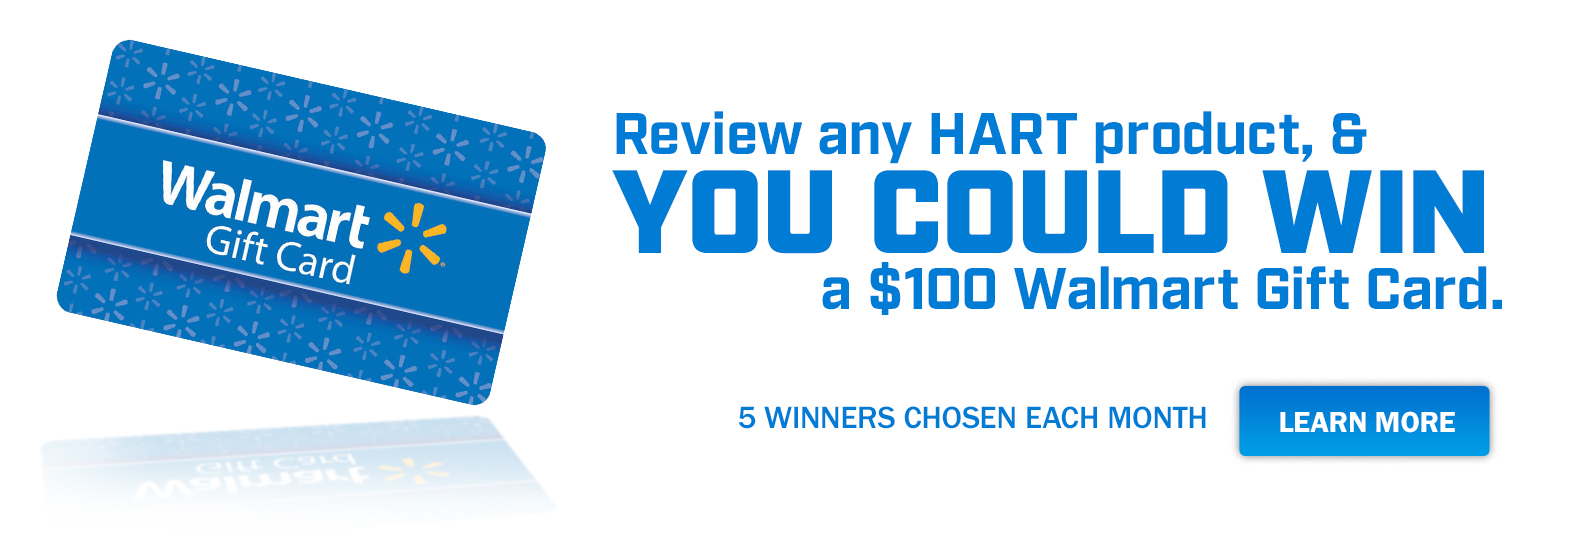 Review any HART product, and you could WIN, a $100 Walmart Gift Cart.